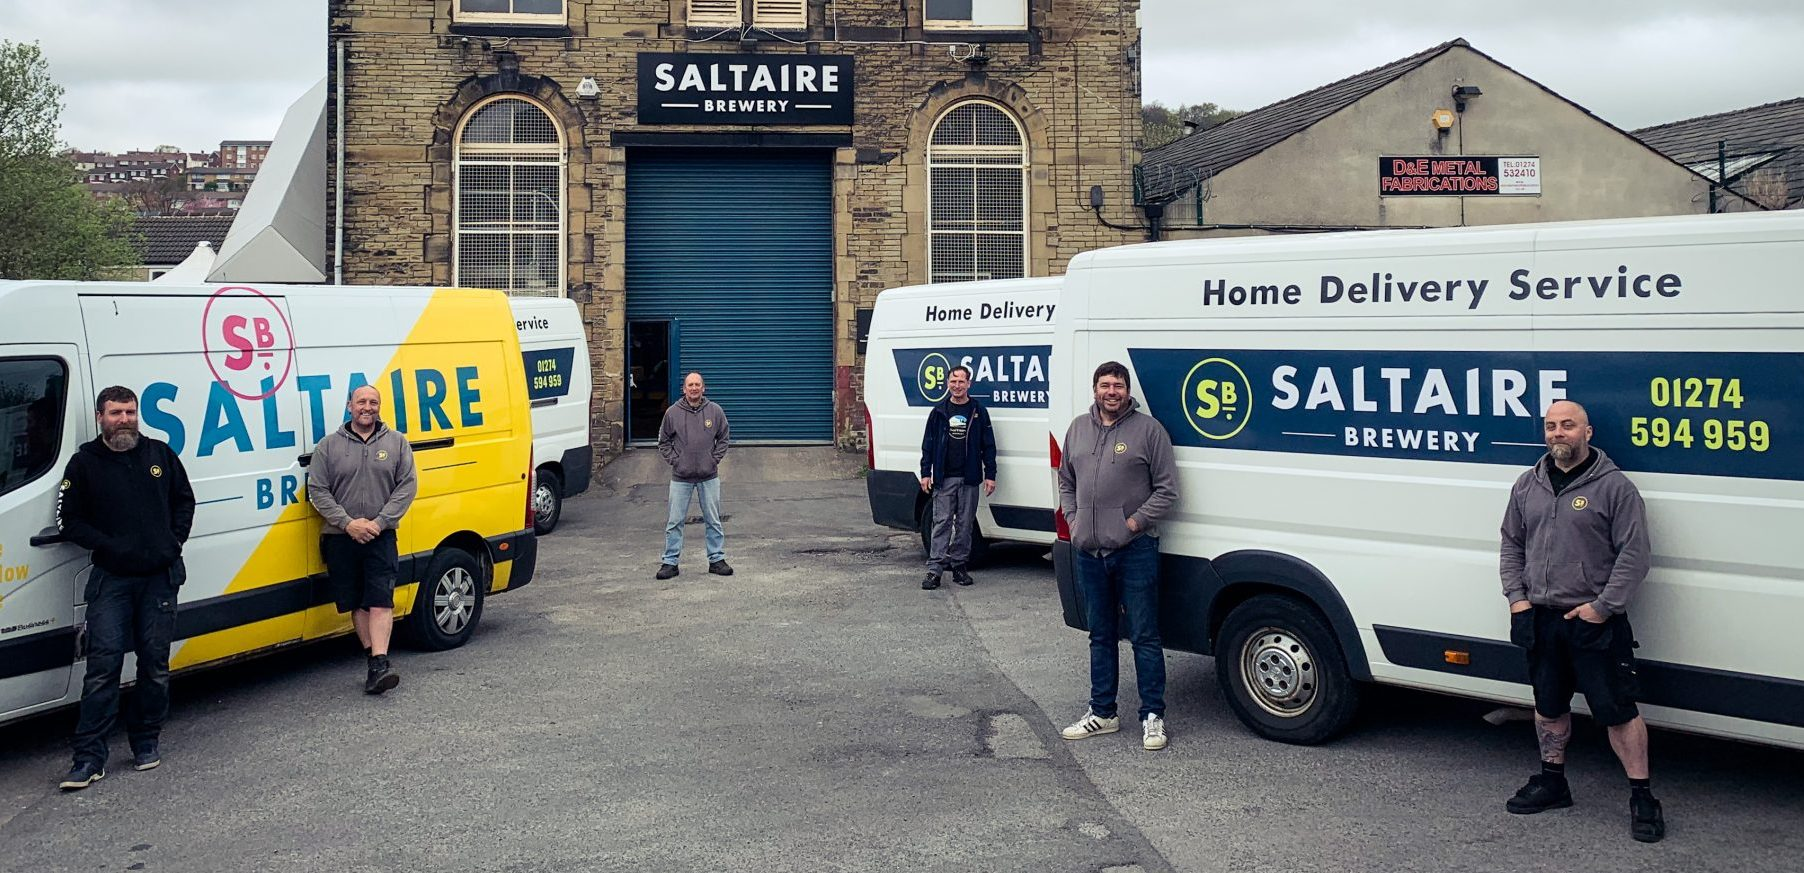 saltaire-1